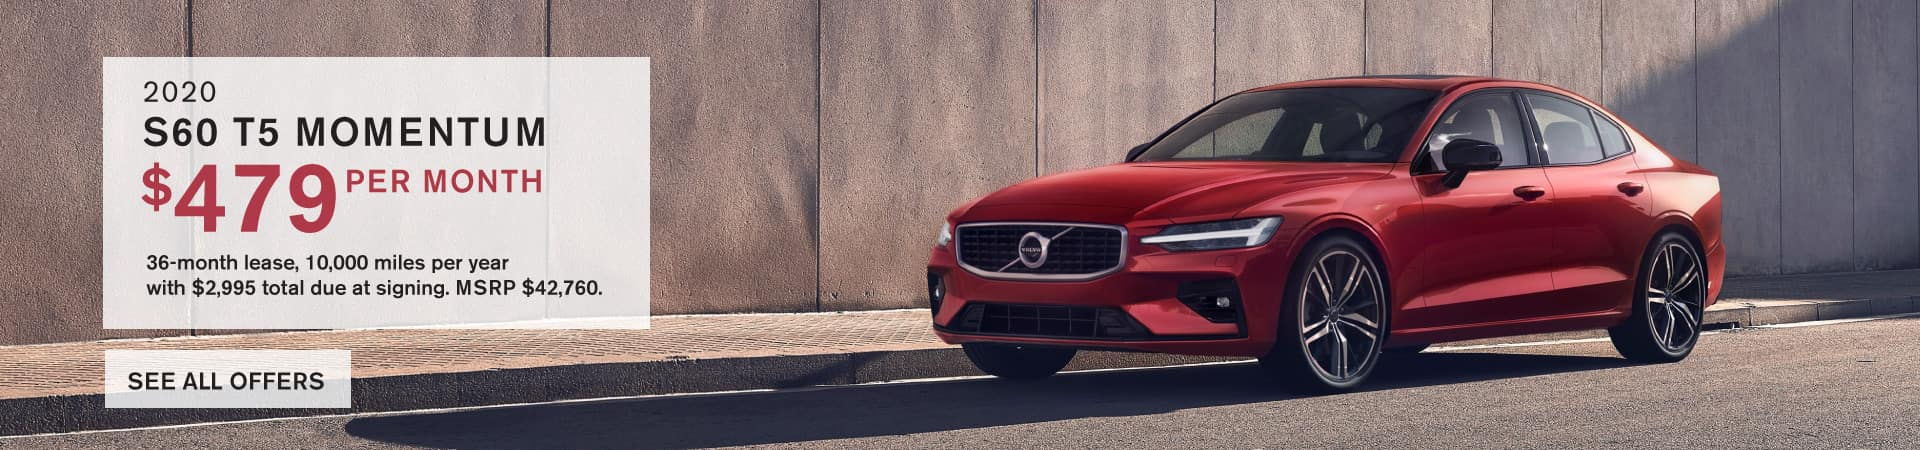 Autobahn Volvo Fort Worth | 2020 S60 Lease Special